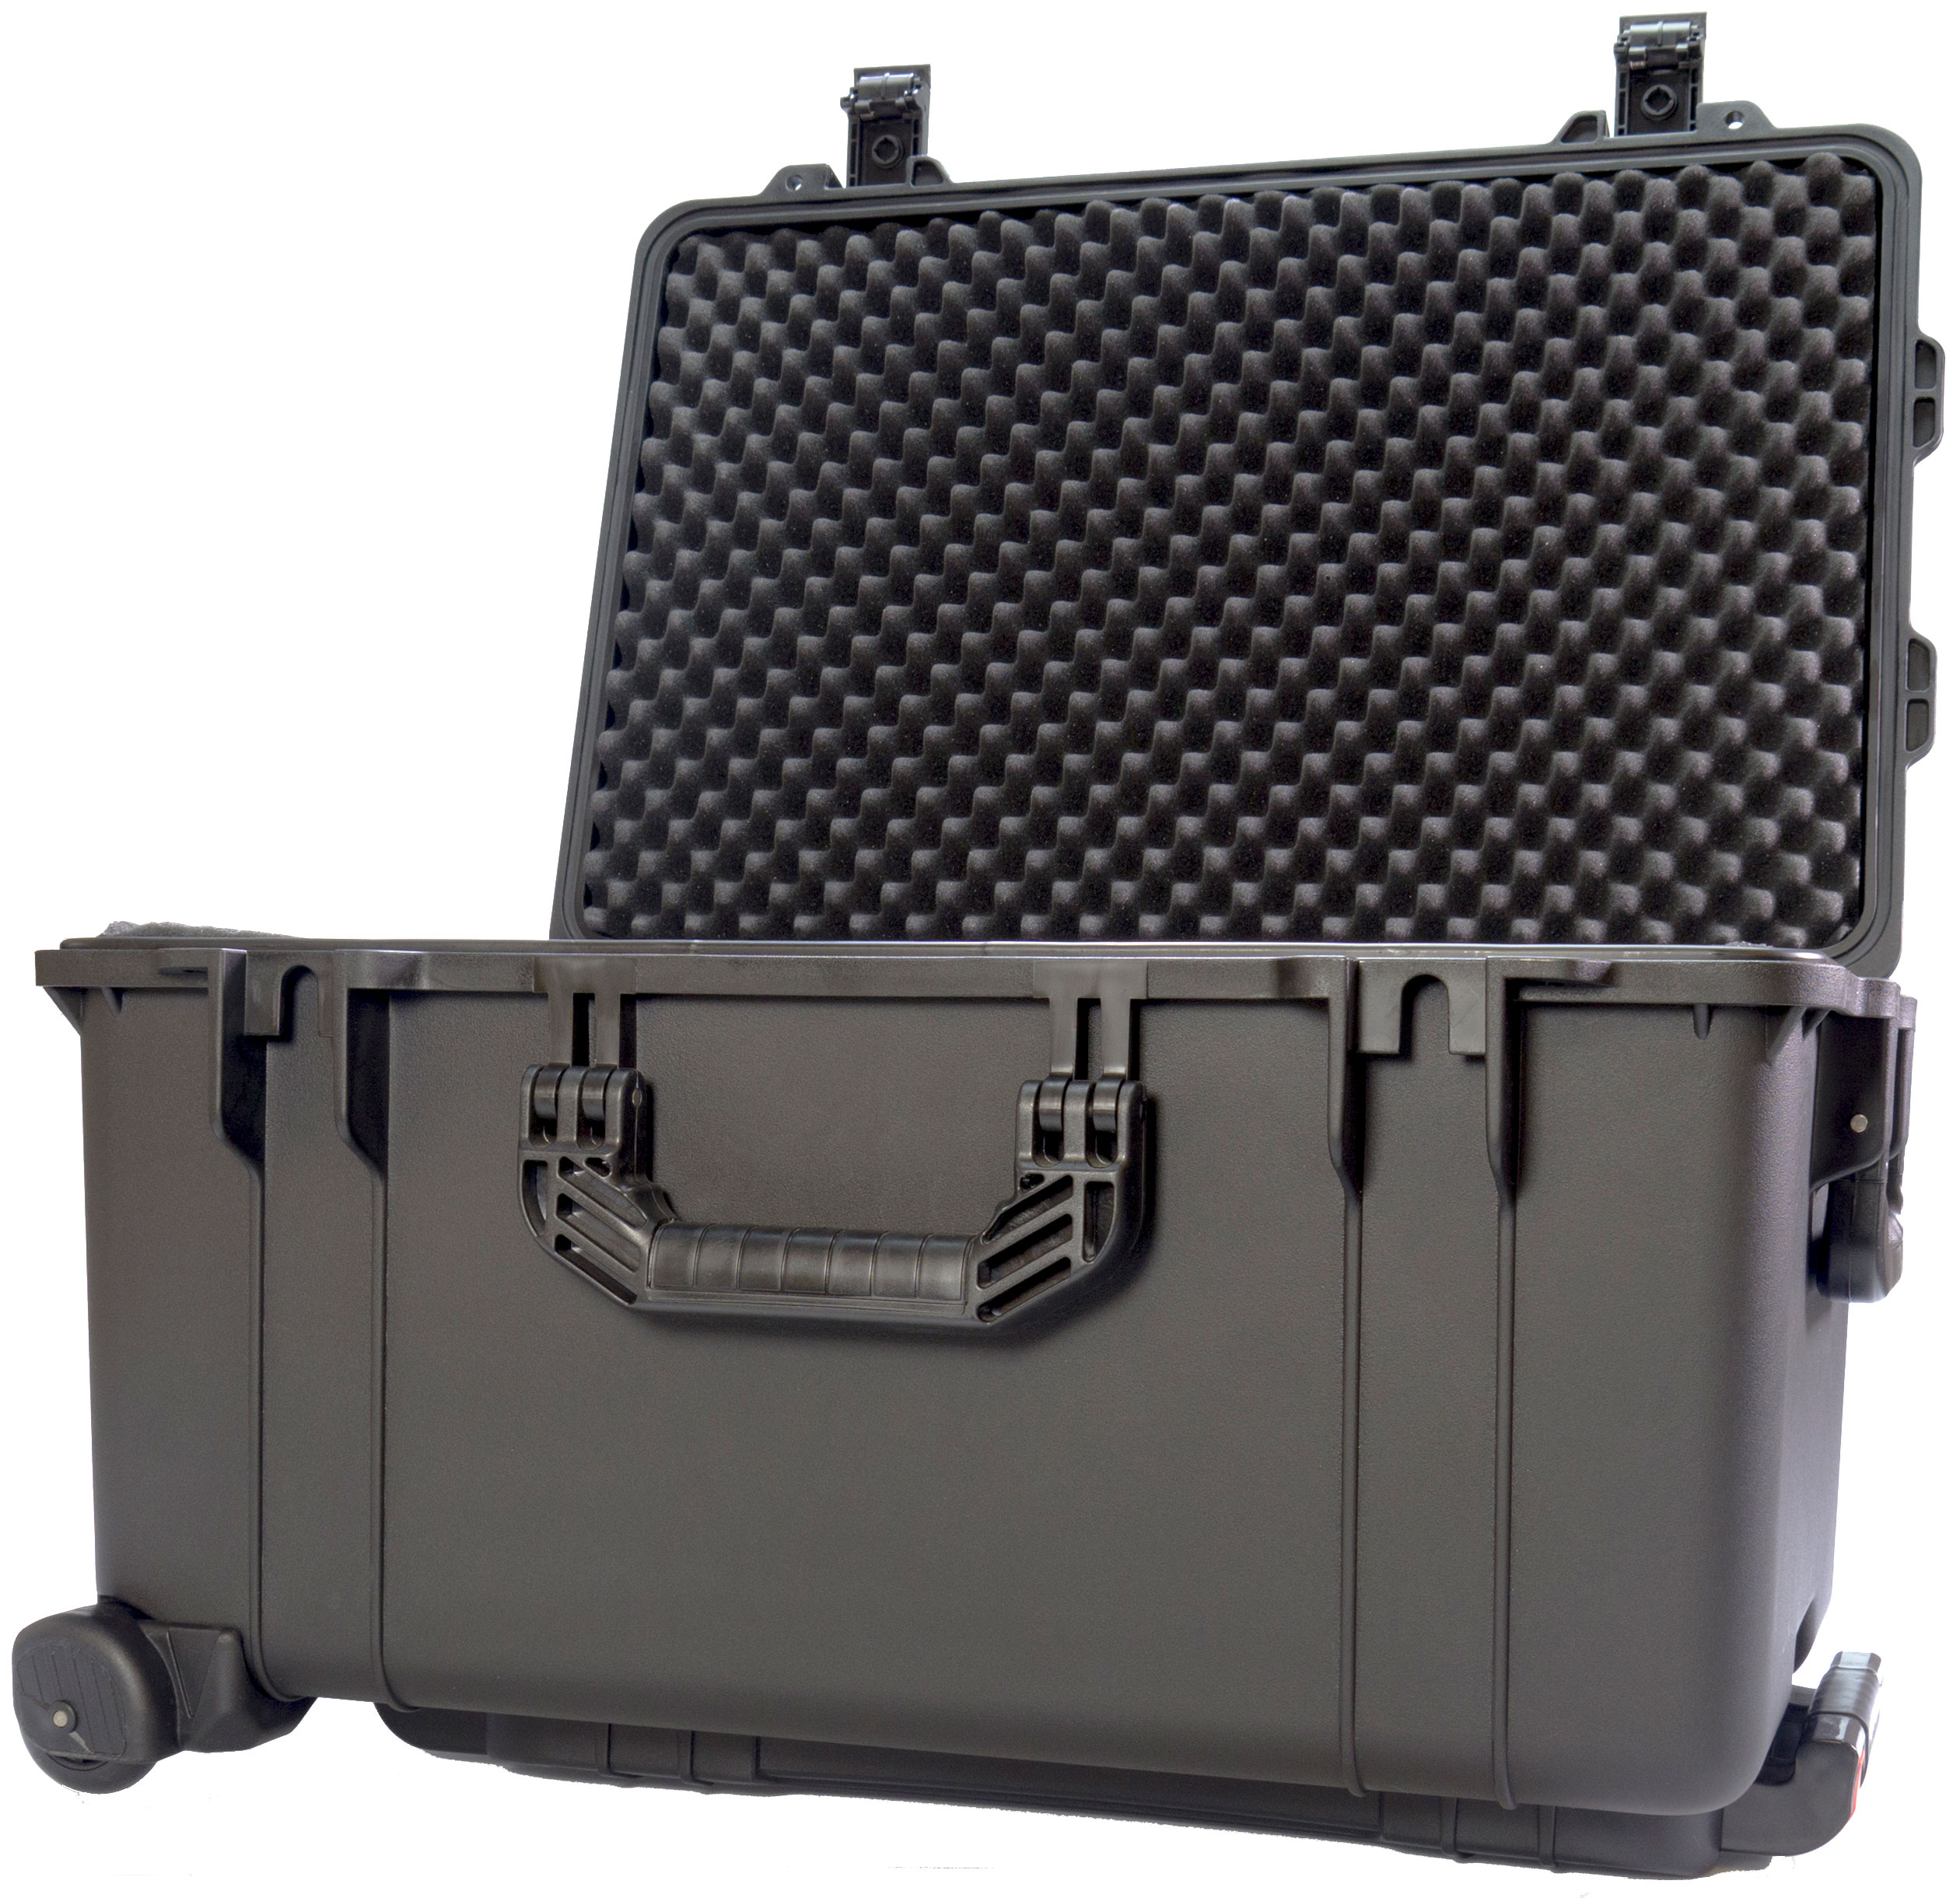 NEW datavideo BDL1602 (HS-1600T, three PTC-150T's and a sturdy rolling case for transport) - HC 800 open24022020083627